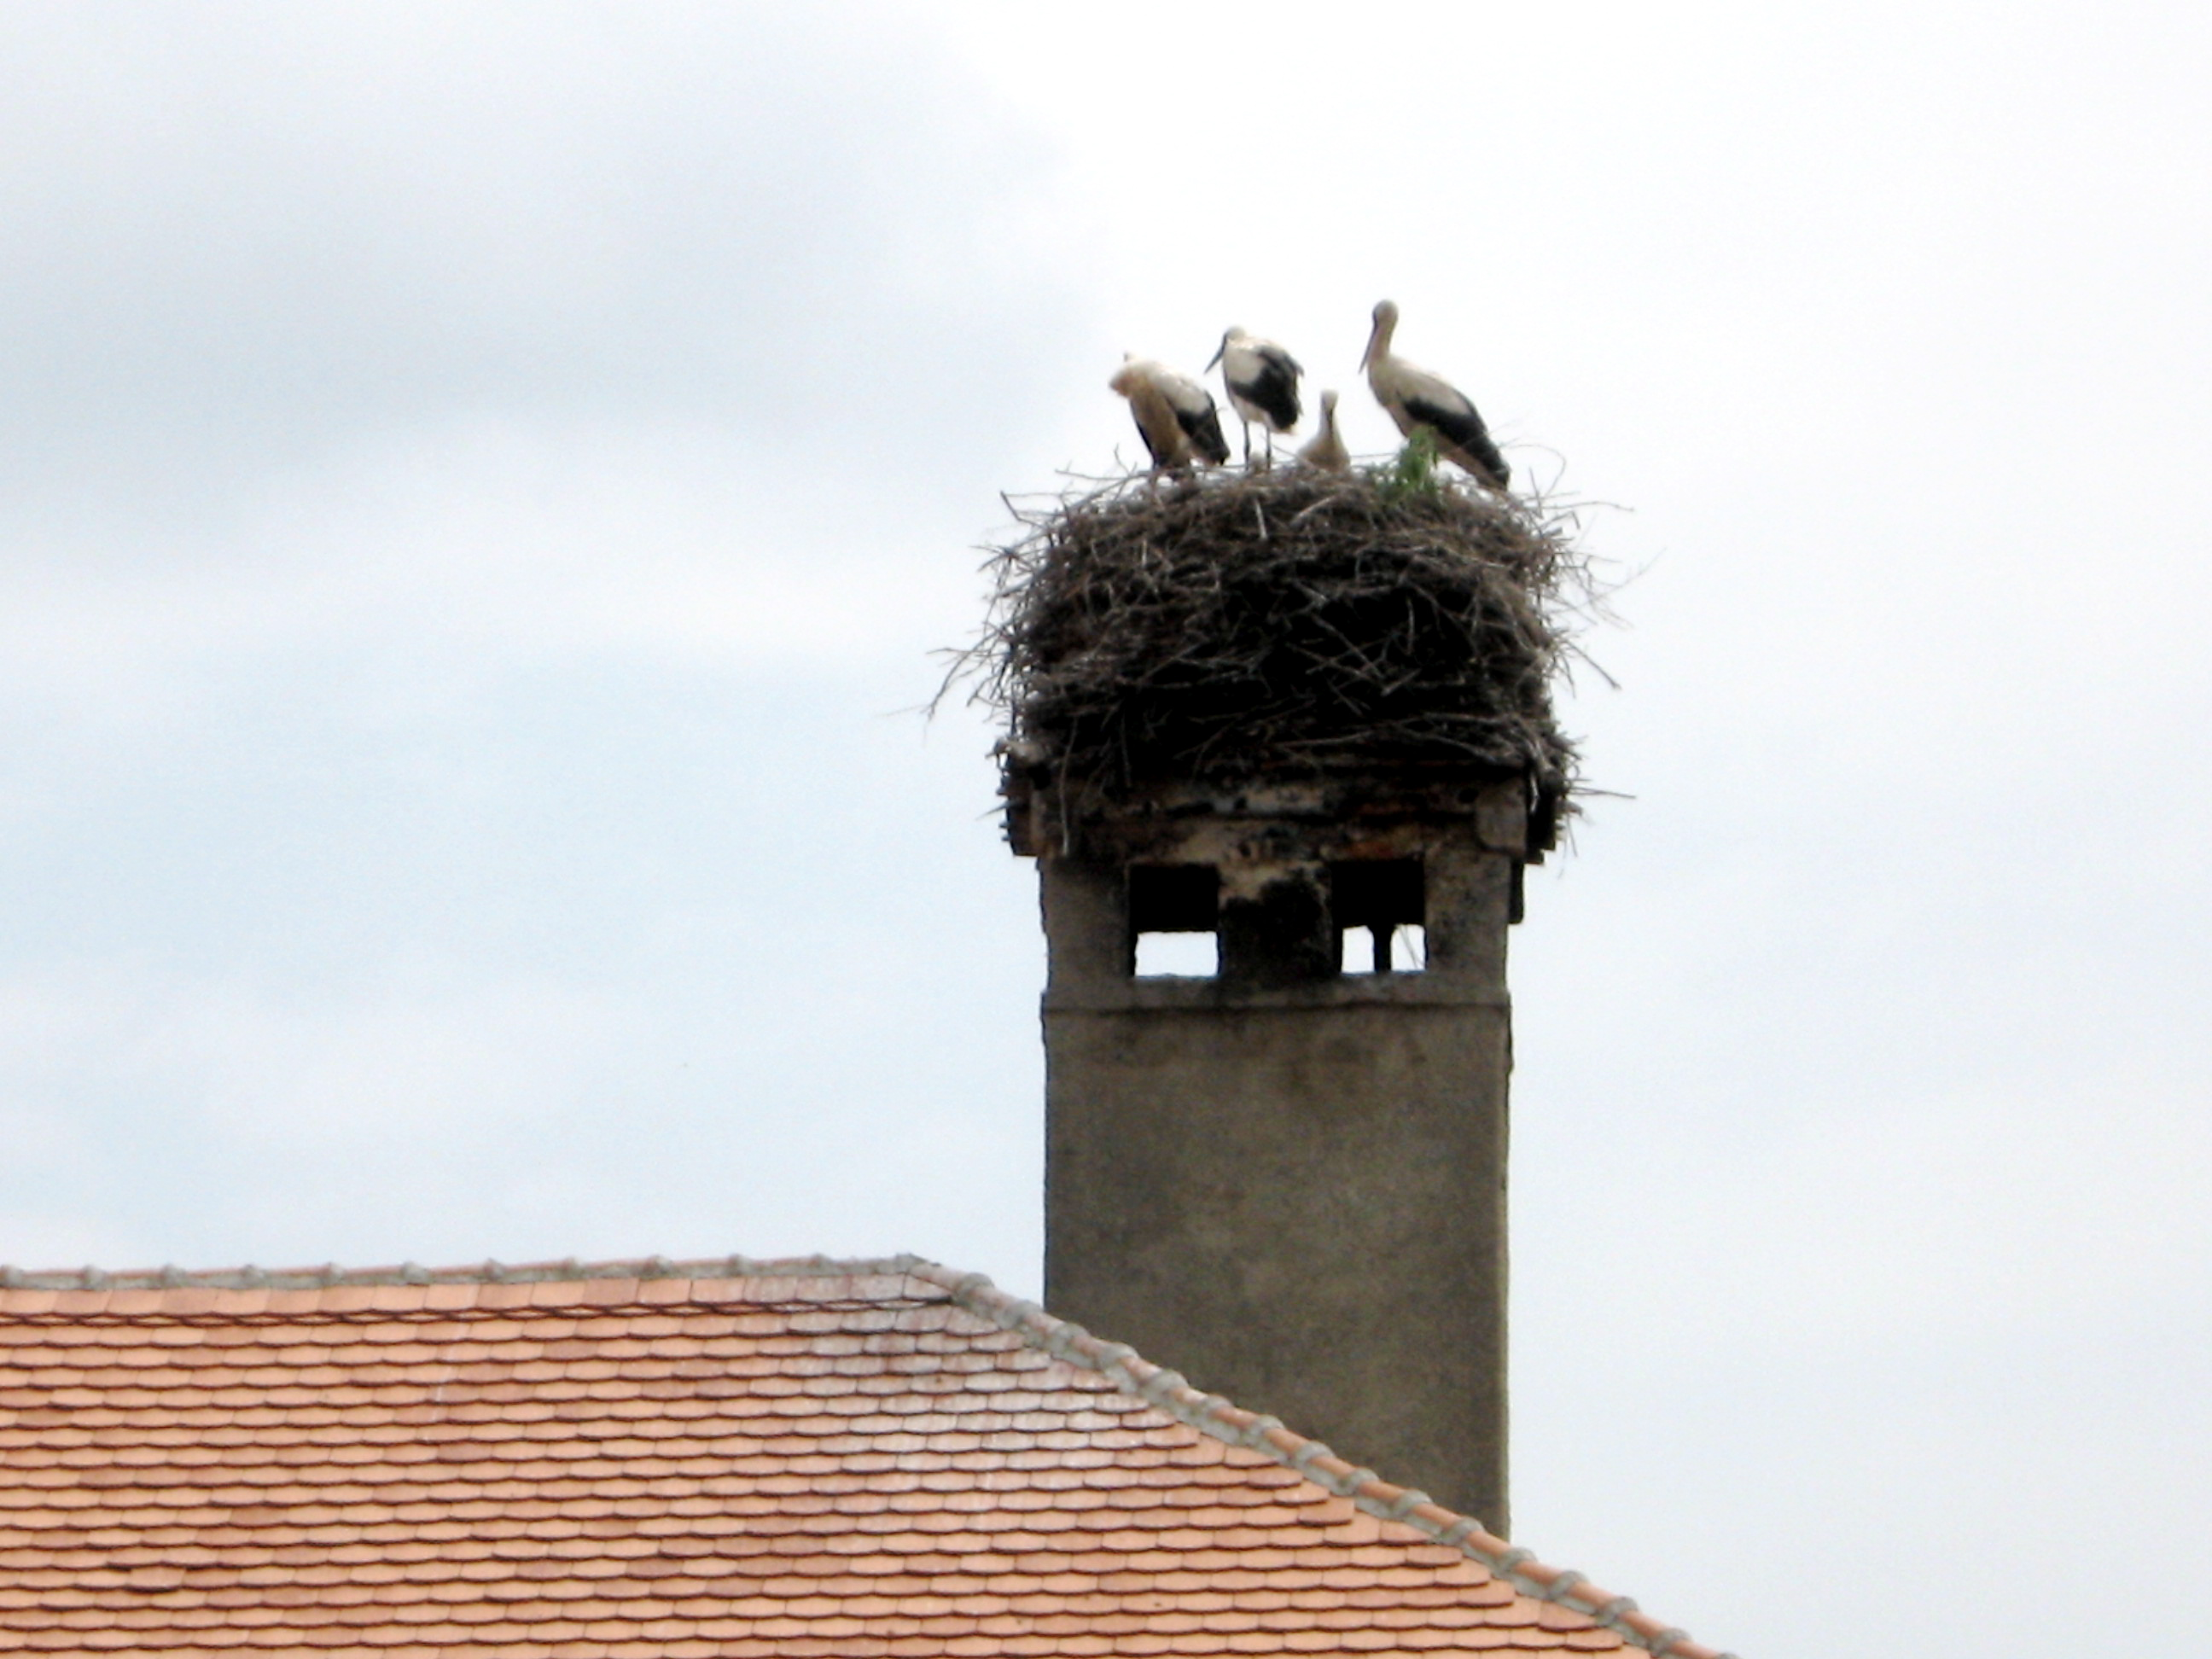 Storks Spend Their Summers in Transylvania